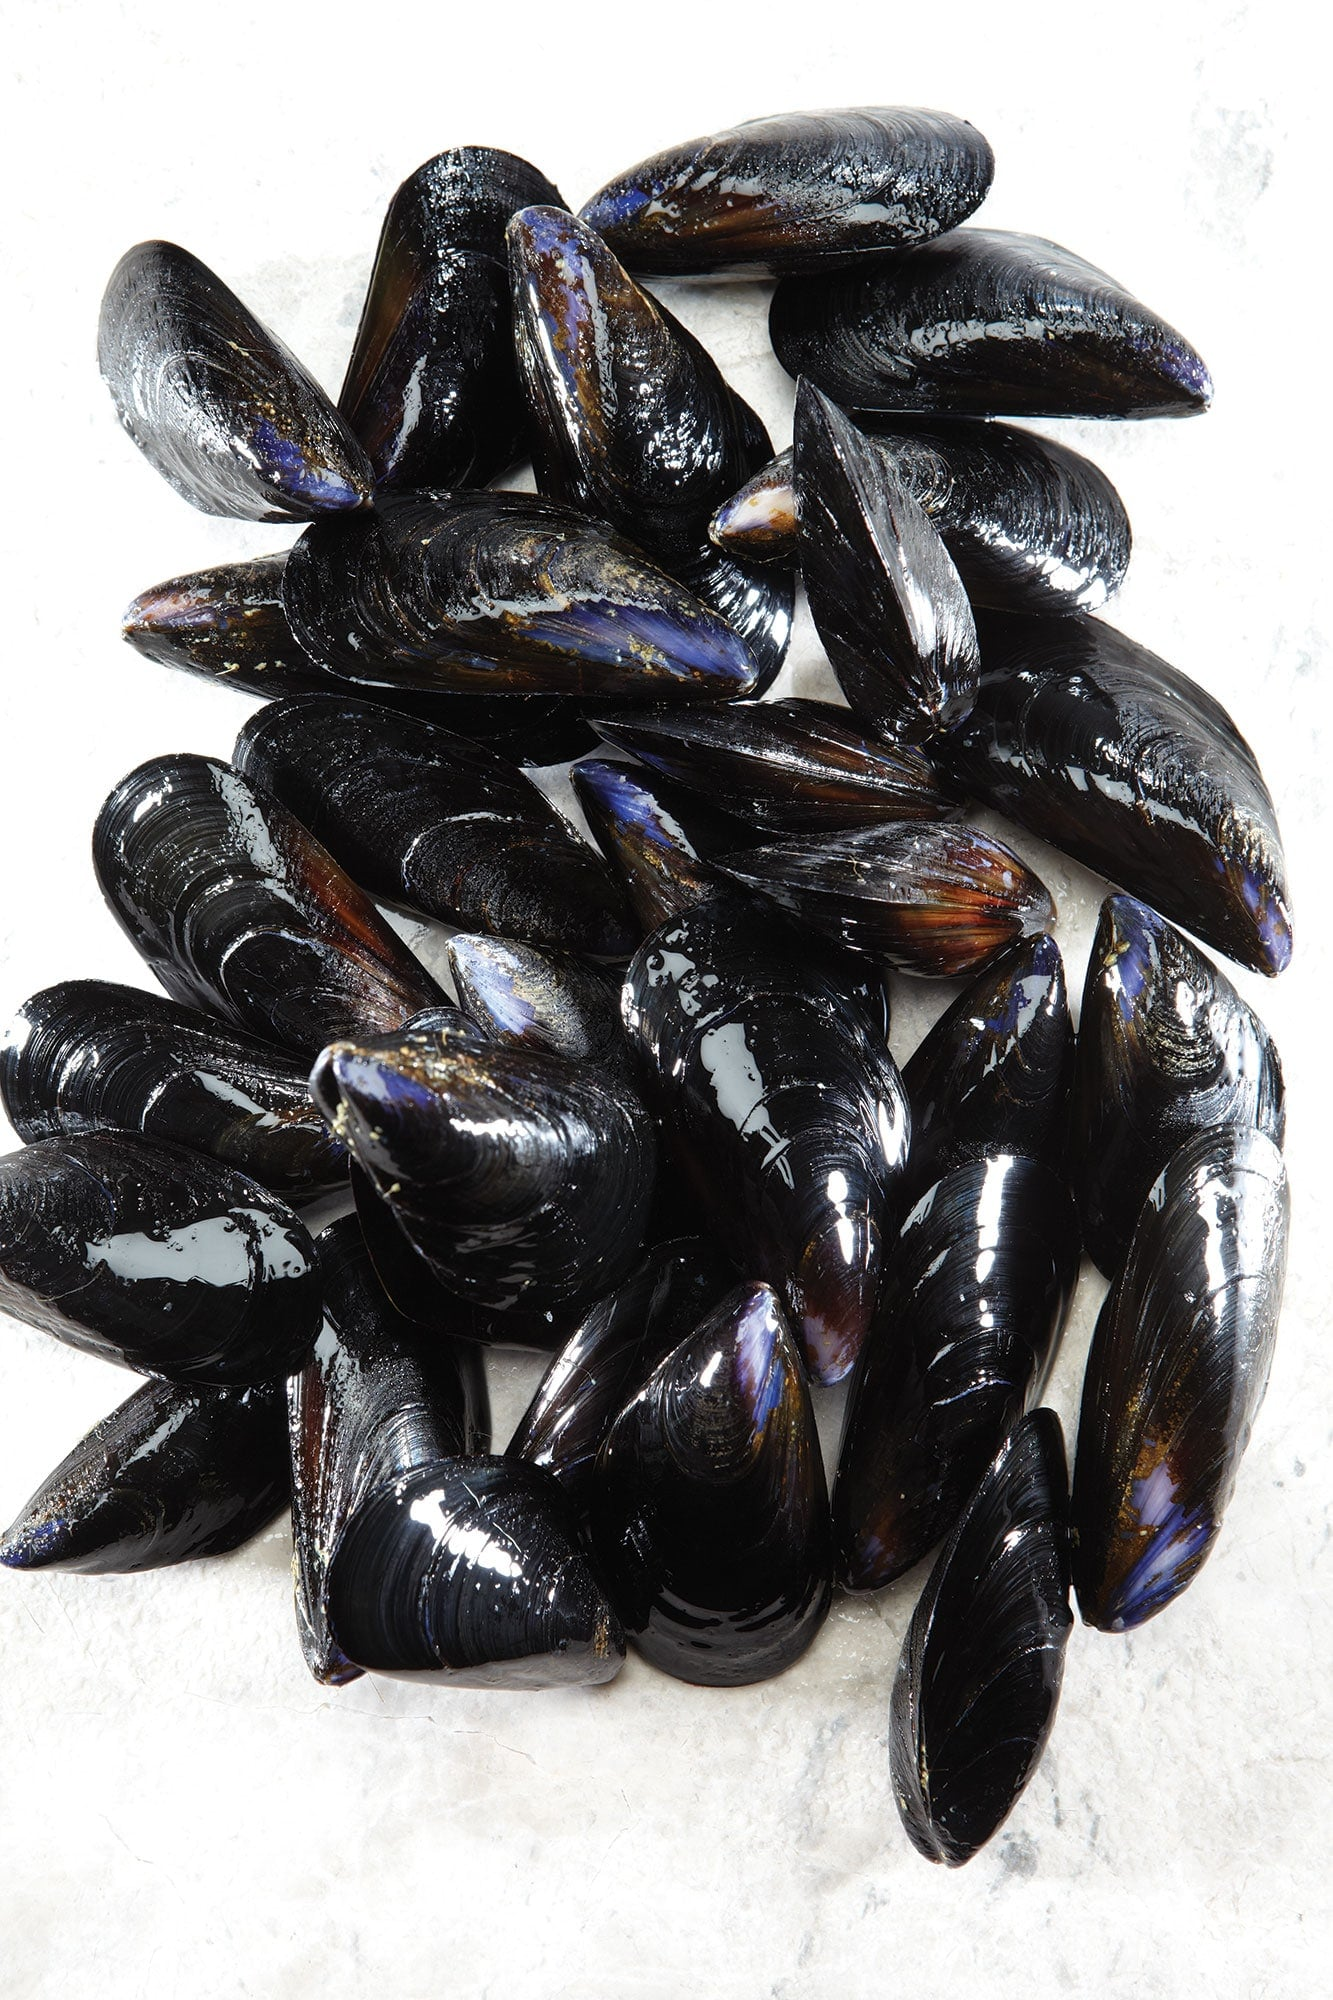 mussels-cockles-clams-welks-5